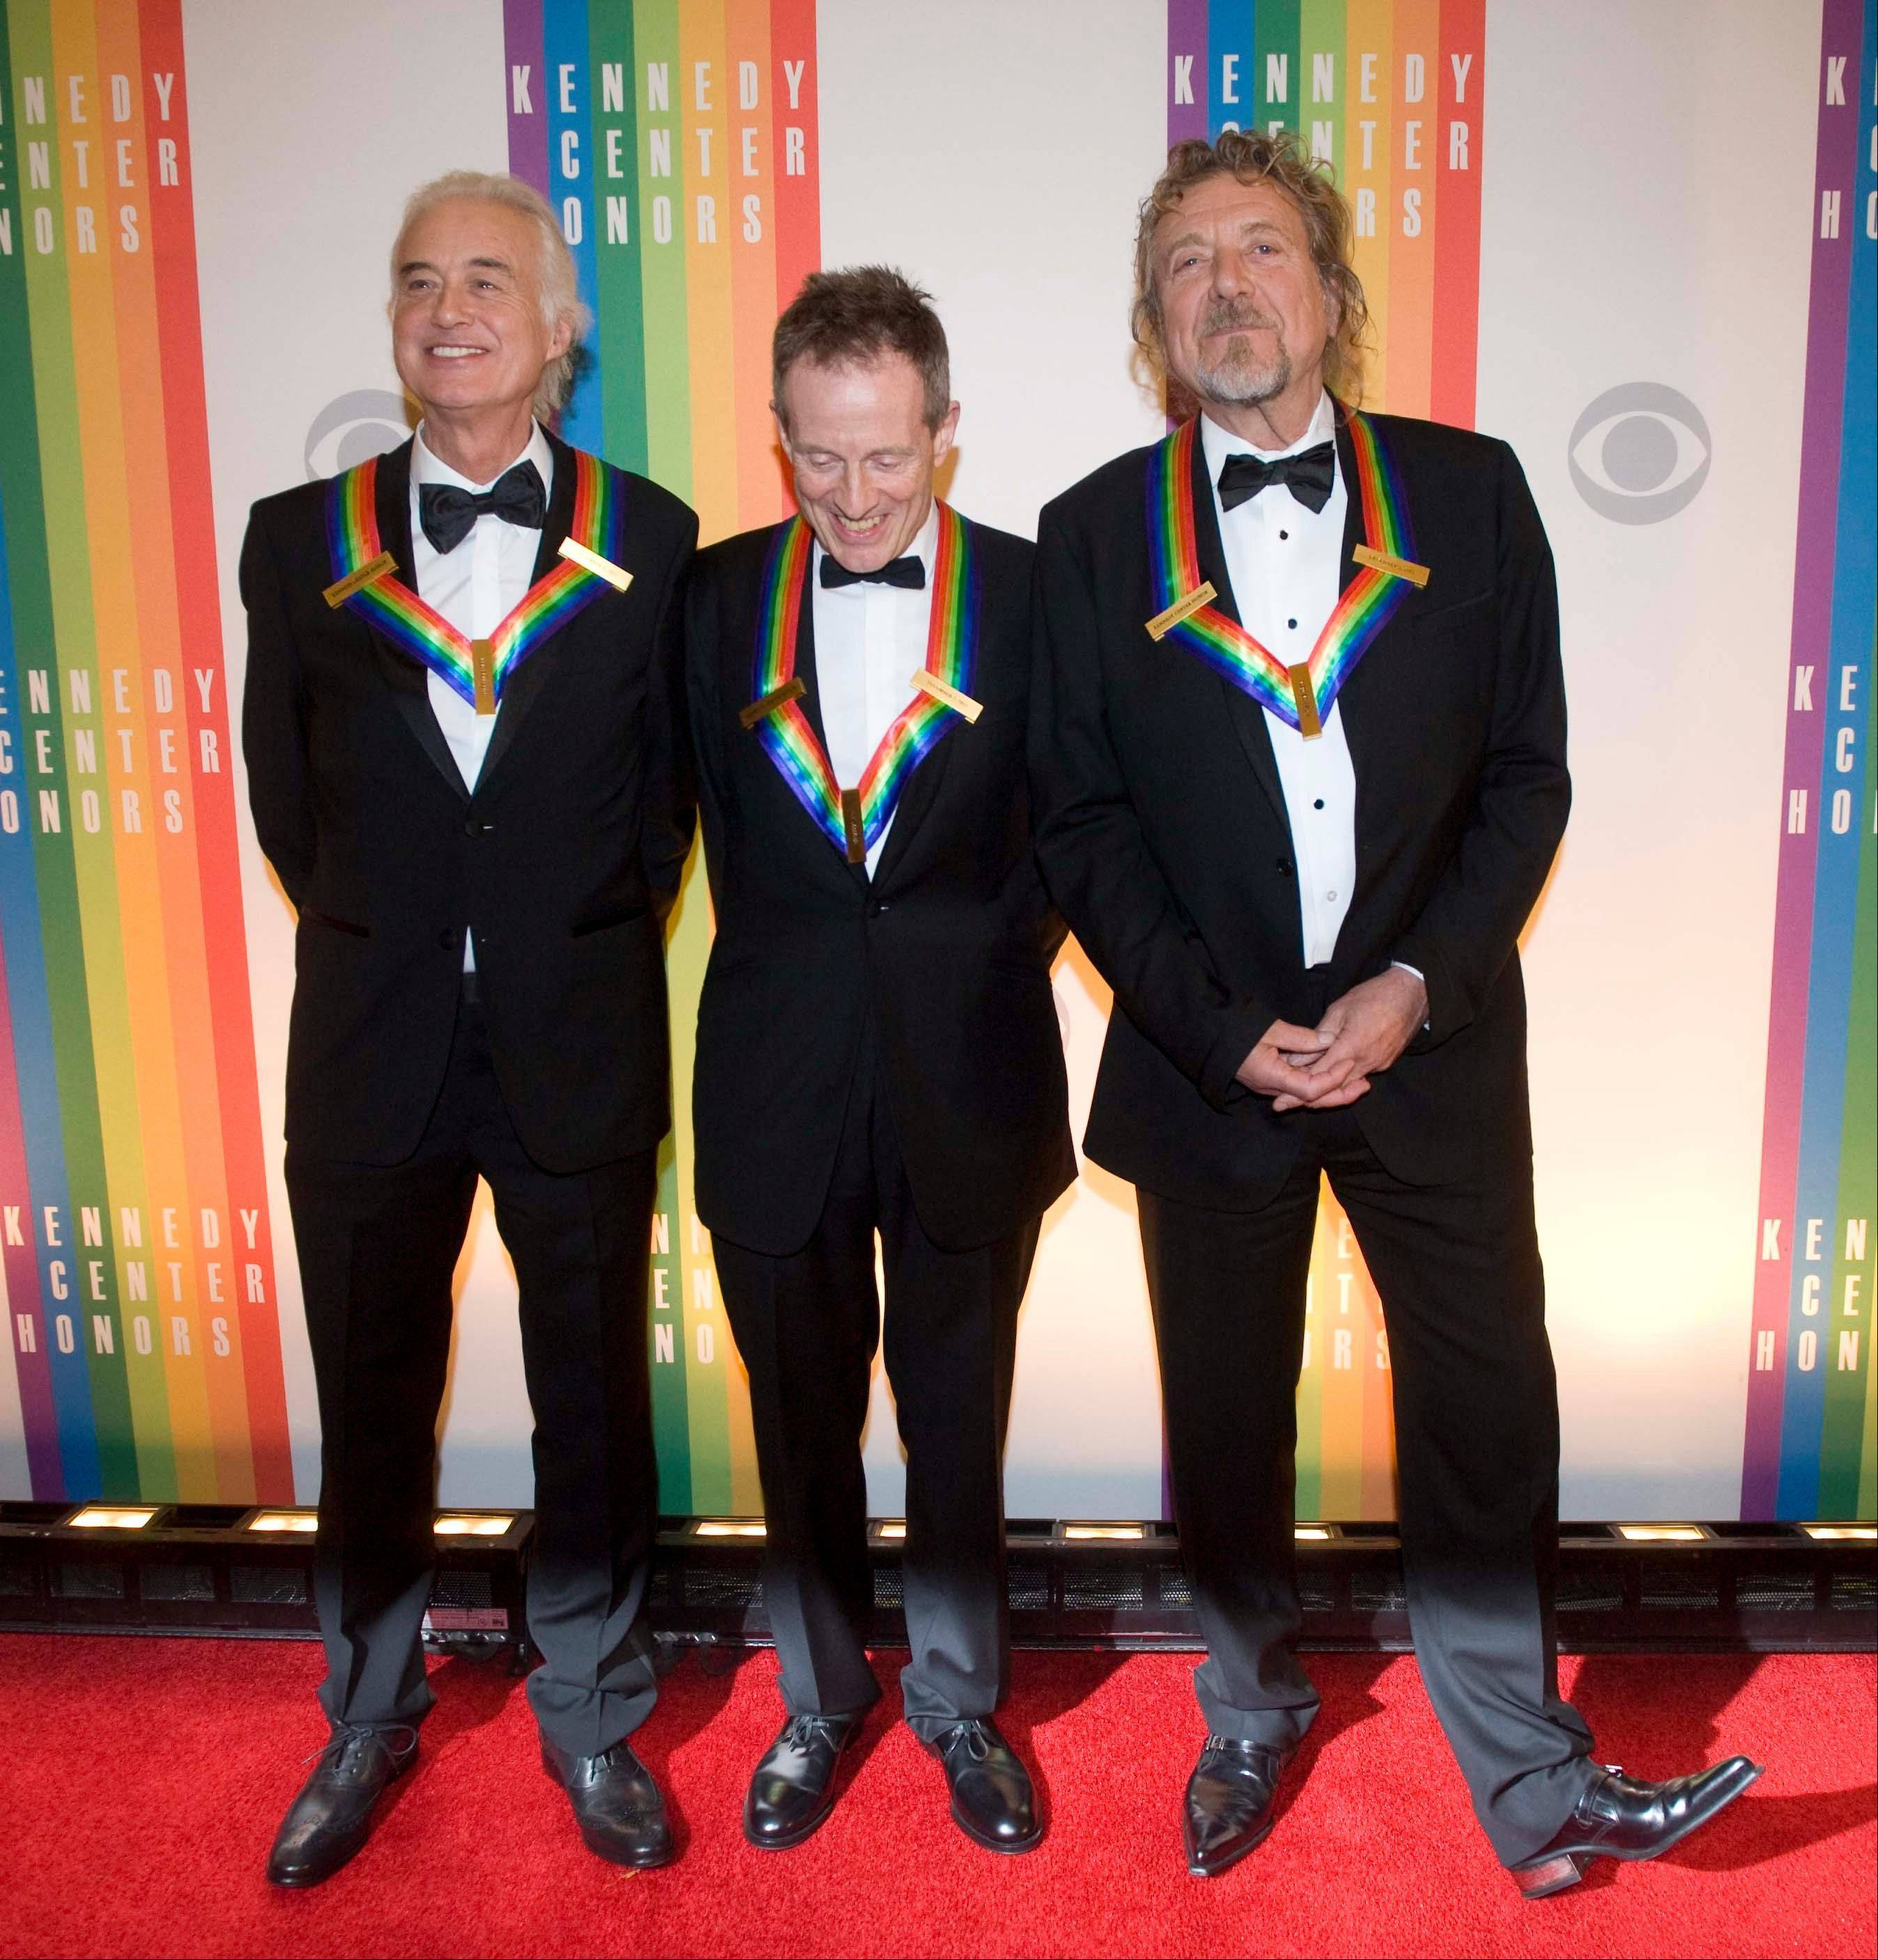 2012 Kennedy Center Honorees and members of the band Led Zeppelin, from left, Jimmy Page, John Paul Jones, and Robert Plant arrive at the Kennedy Center for the Performing Arts for the 2012 Kennedy Center Honors Performance and Gala Sunday at the State Department in Washington.